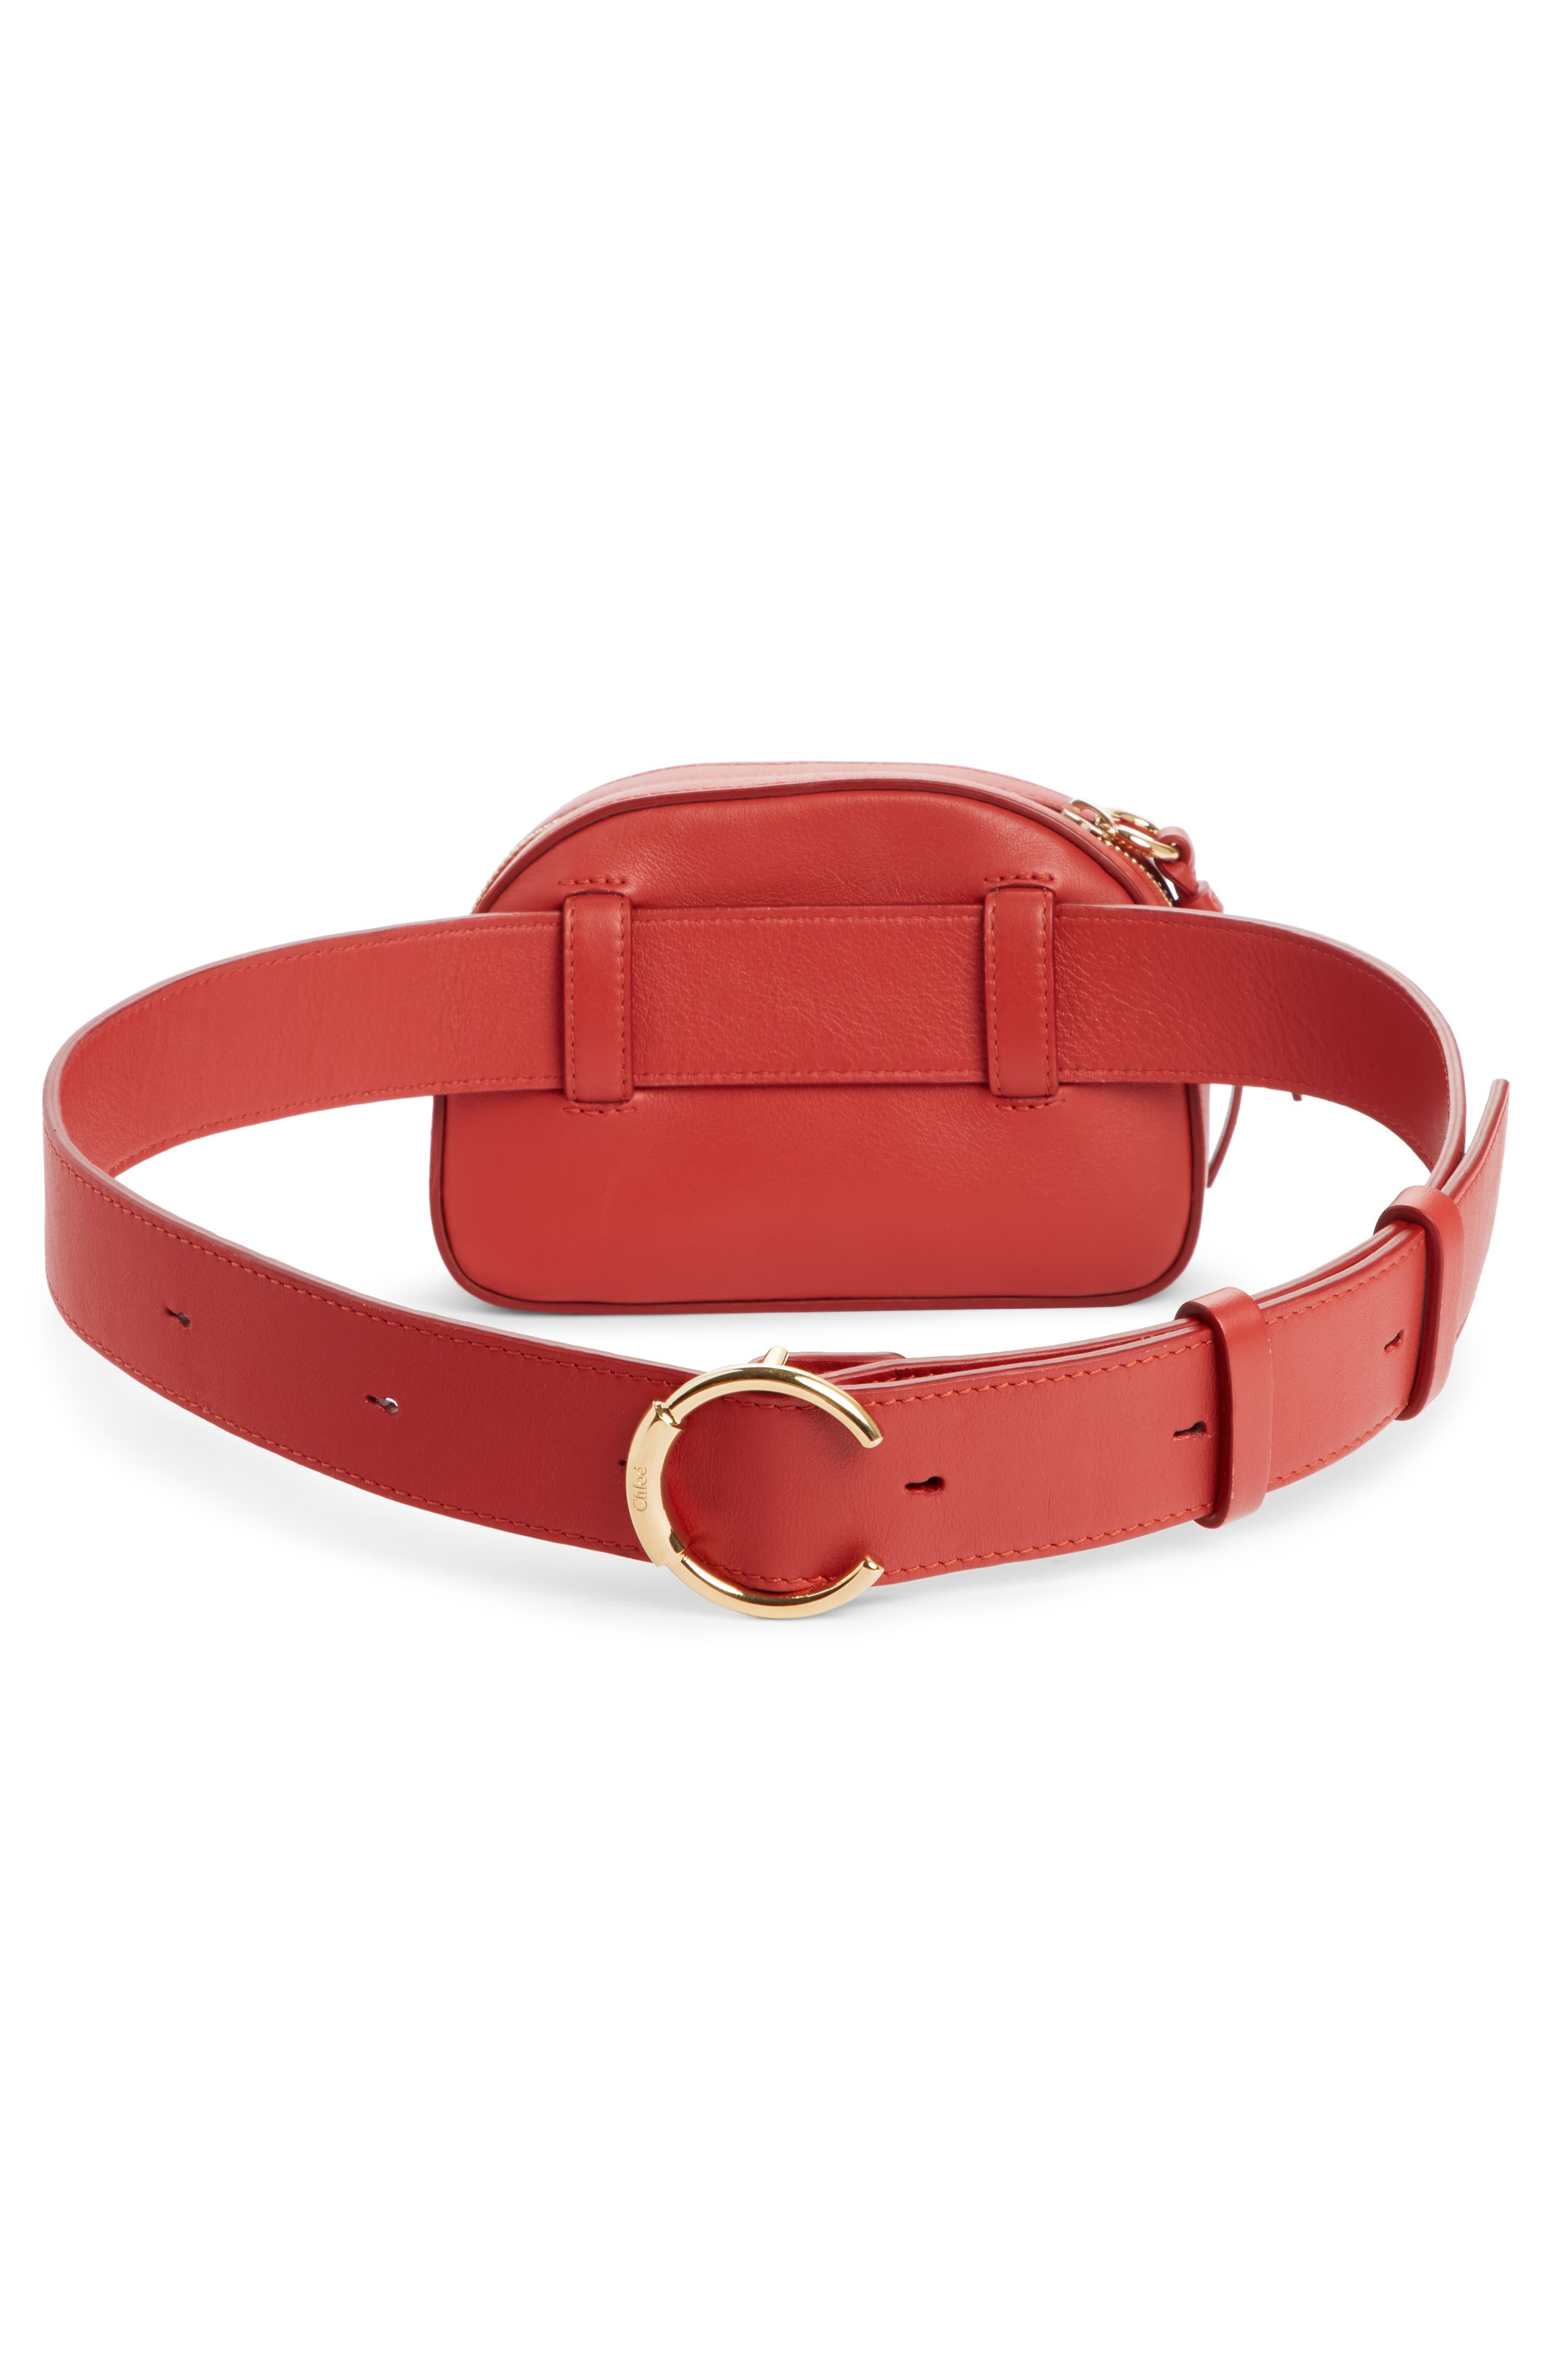 Embroidered Horse Leather Belt Bag,                             Alternate thumbnail 3, color,                             EARTHY RED